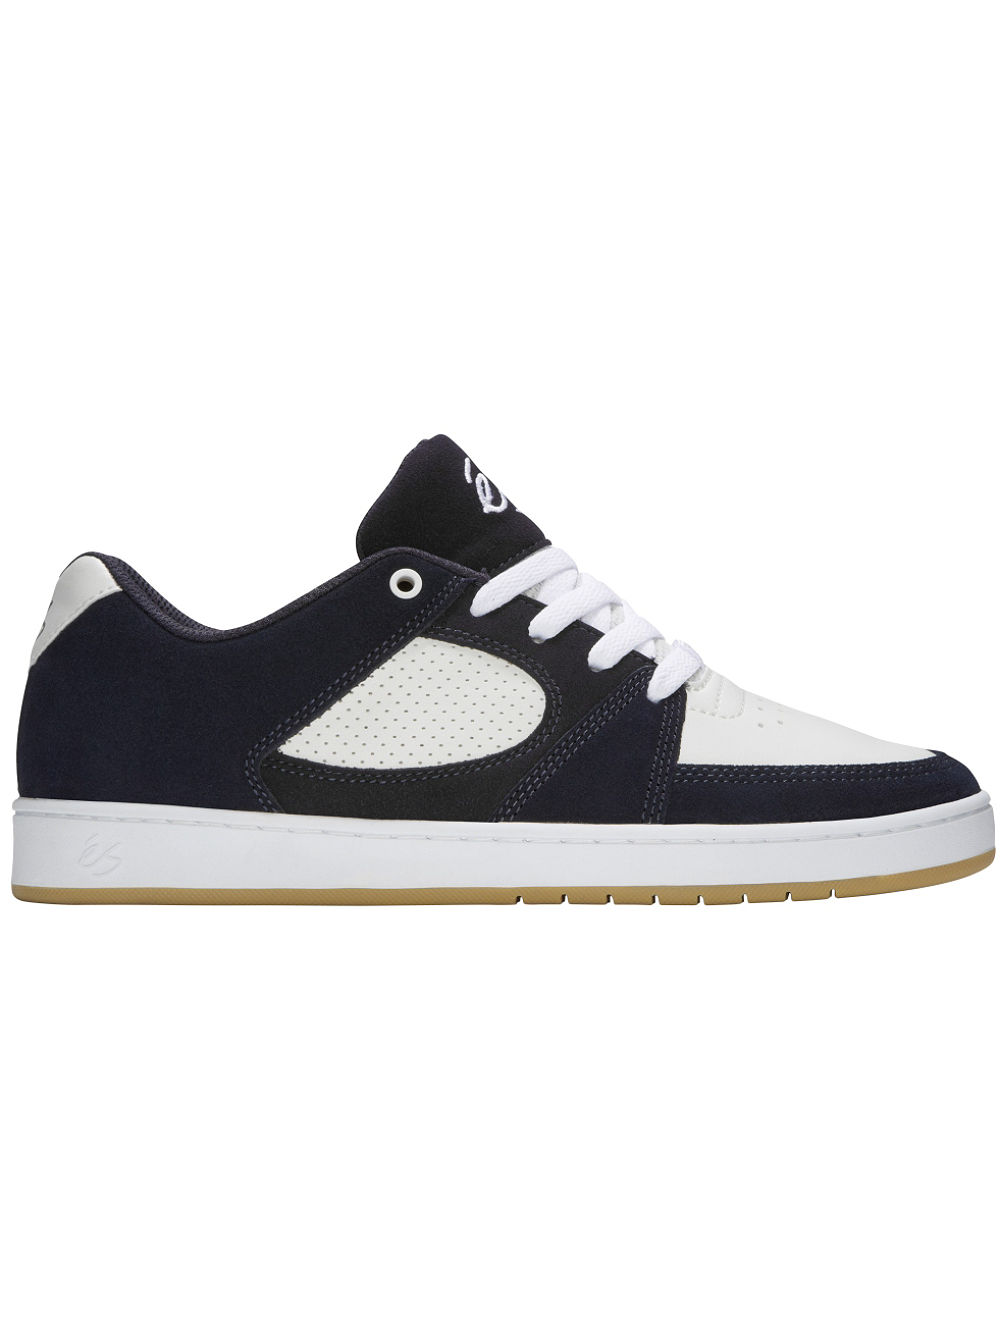 Buy Es Accel Skate Shoes